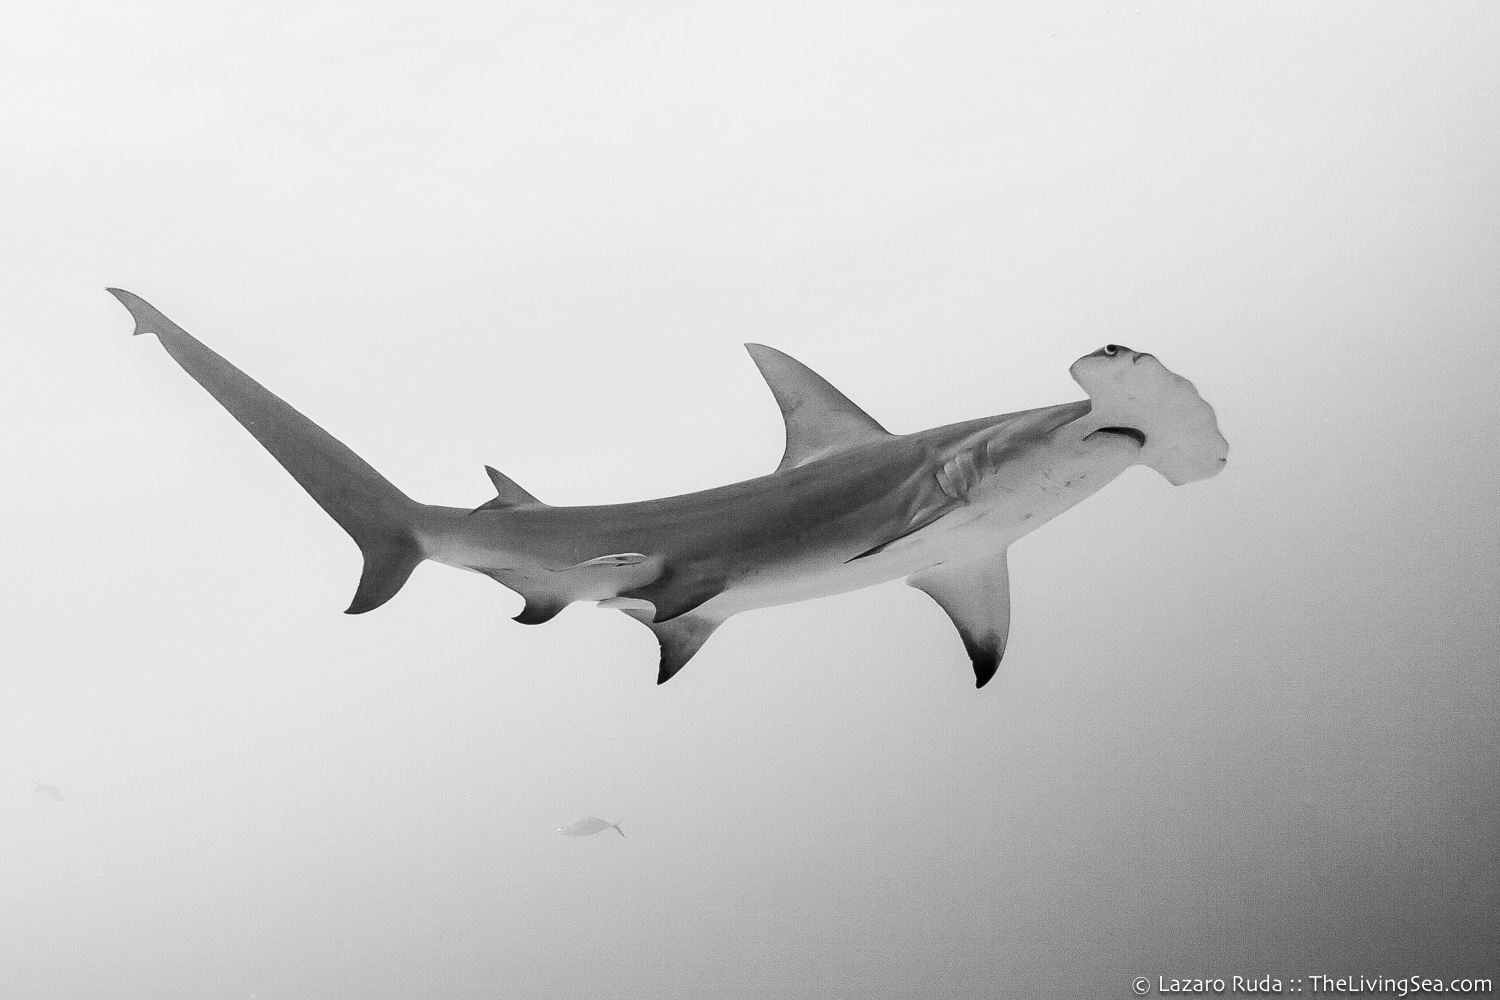 Bahamas, Cartilaginous Fishes: Chondrichthyes, Fishes, Ground Sharks: Carcharhiniformes, Hammerhead Sharks: Sphyrnidae, Marine Life, Sharks, West Indies, b/w, copyrighted, great hammerhead shark: Sphyrna mokarran, marine, ocean, open ocean, tropical, underwater, underwater photo, wide angle